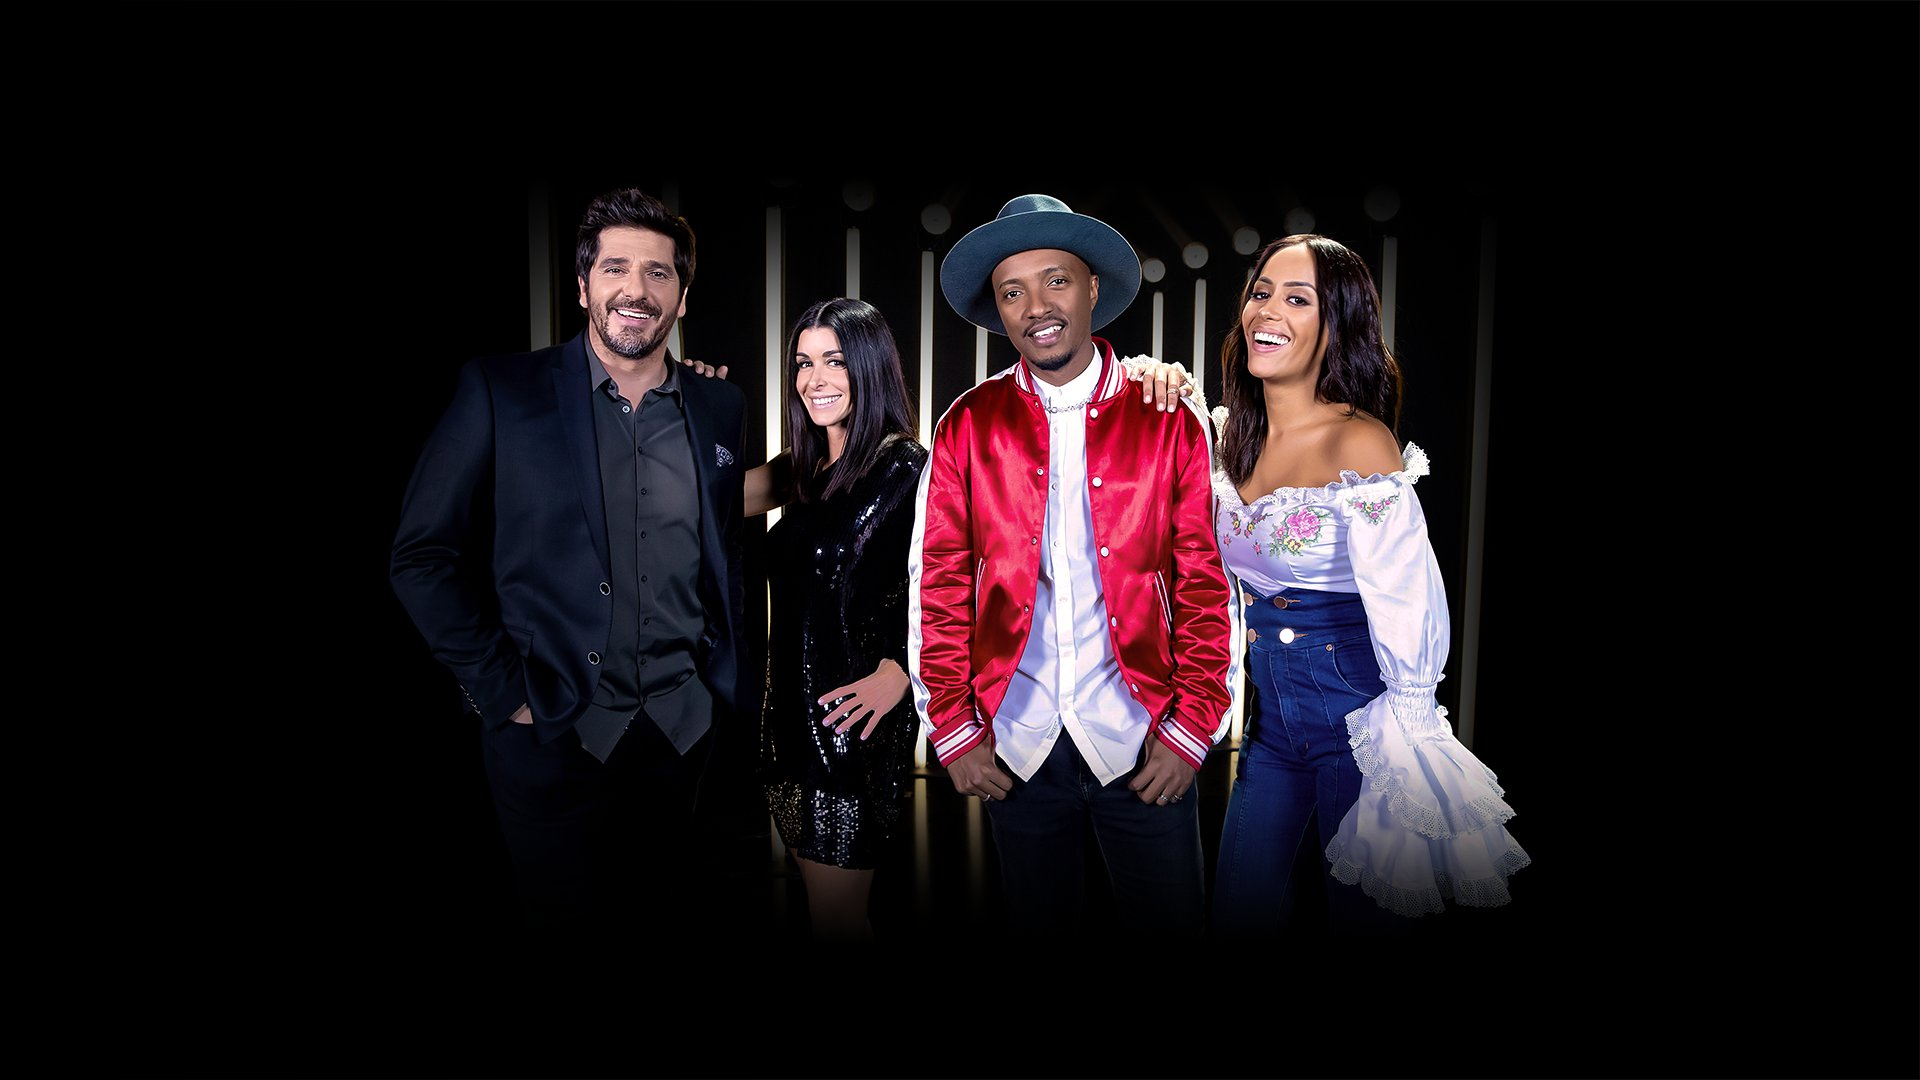 fond Slimane et Vitaa « Versus » en direct pour la finale The Voice 2019